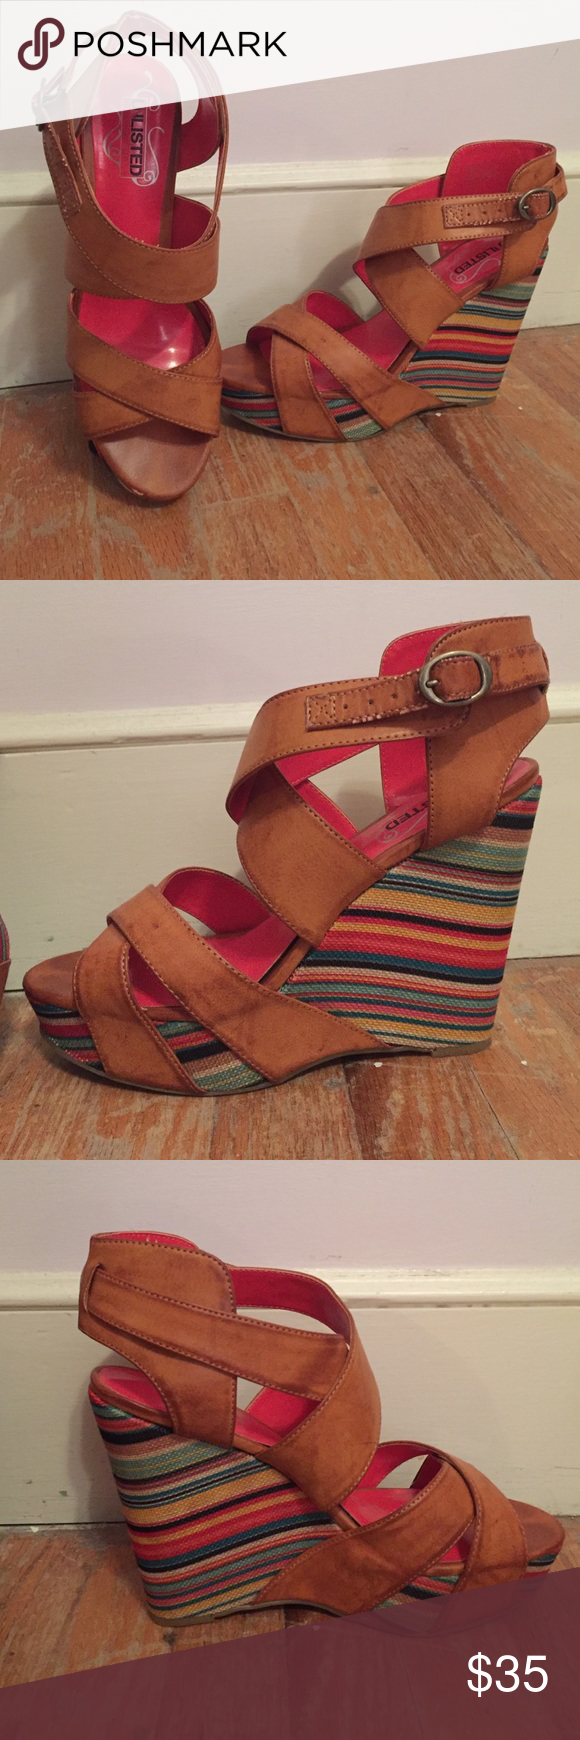 "Rainbow Wedges 4"" wedge on back and 1"" platform under the toe. All color wedge with brown straps. Only worn twice. **send an offer** Shoes Wedges"